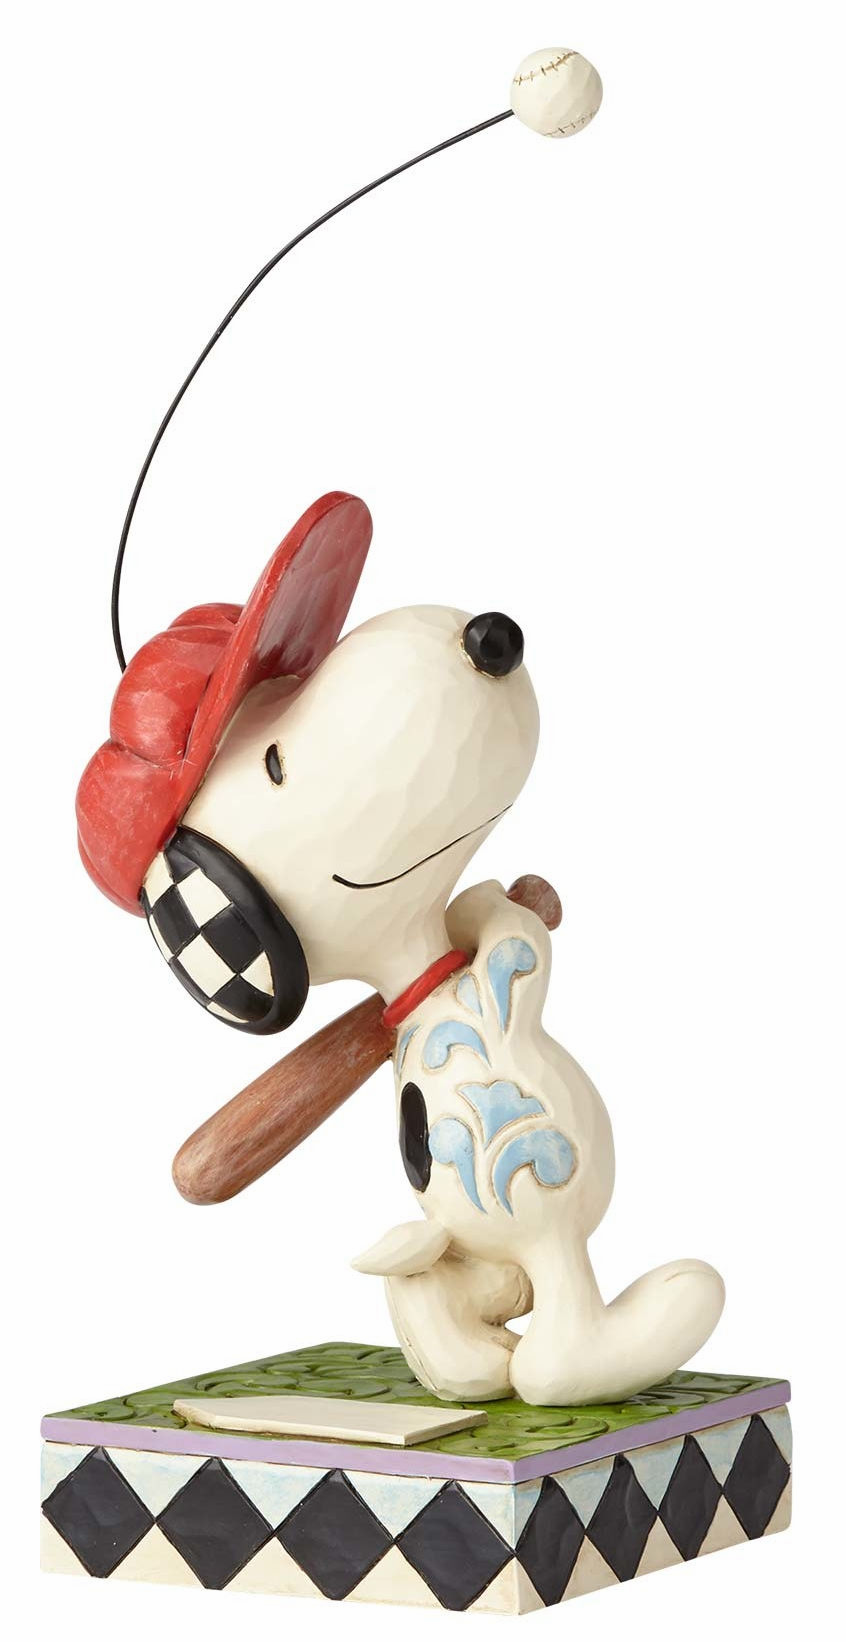 Beagle At Bat Snoopy Baseball Figurine<br>BRAND NEW DESIGN!<br>ONLY 7 LEFT!